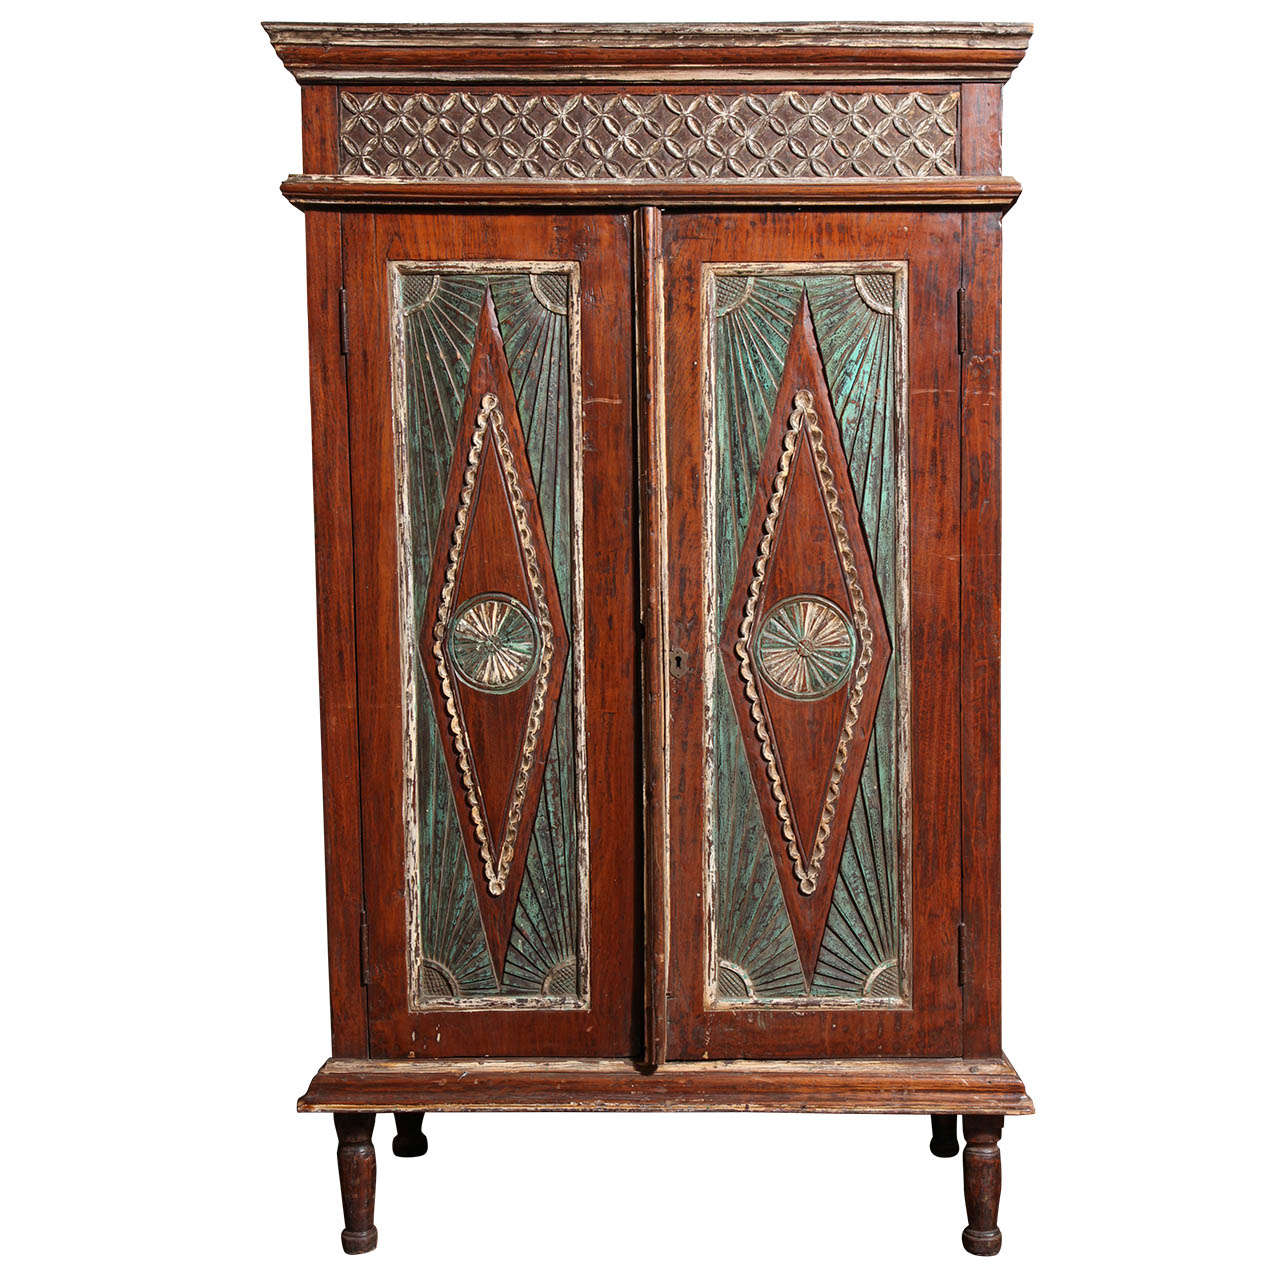 Early 20th Century Two-Door Painted Teak Javanese Cabinet with Diamond Patterns